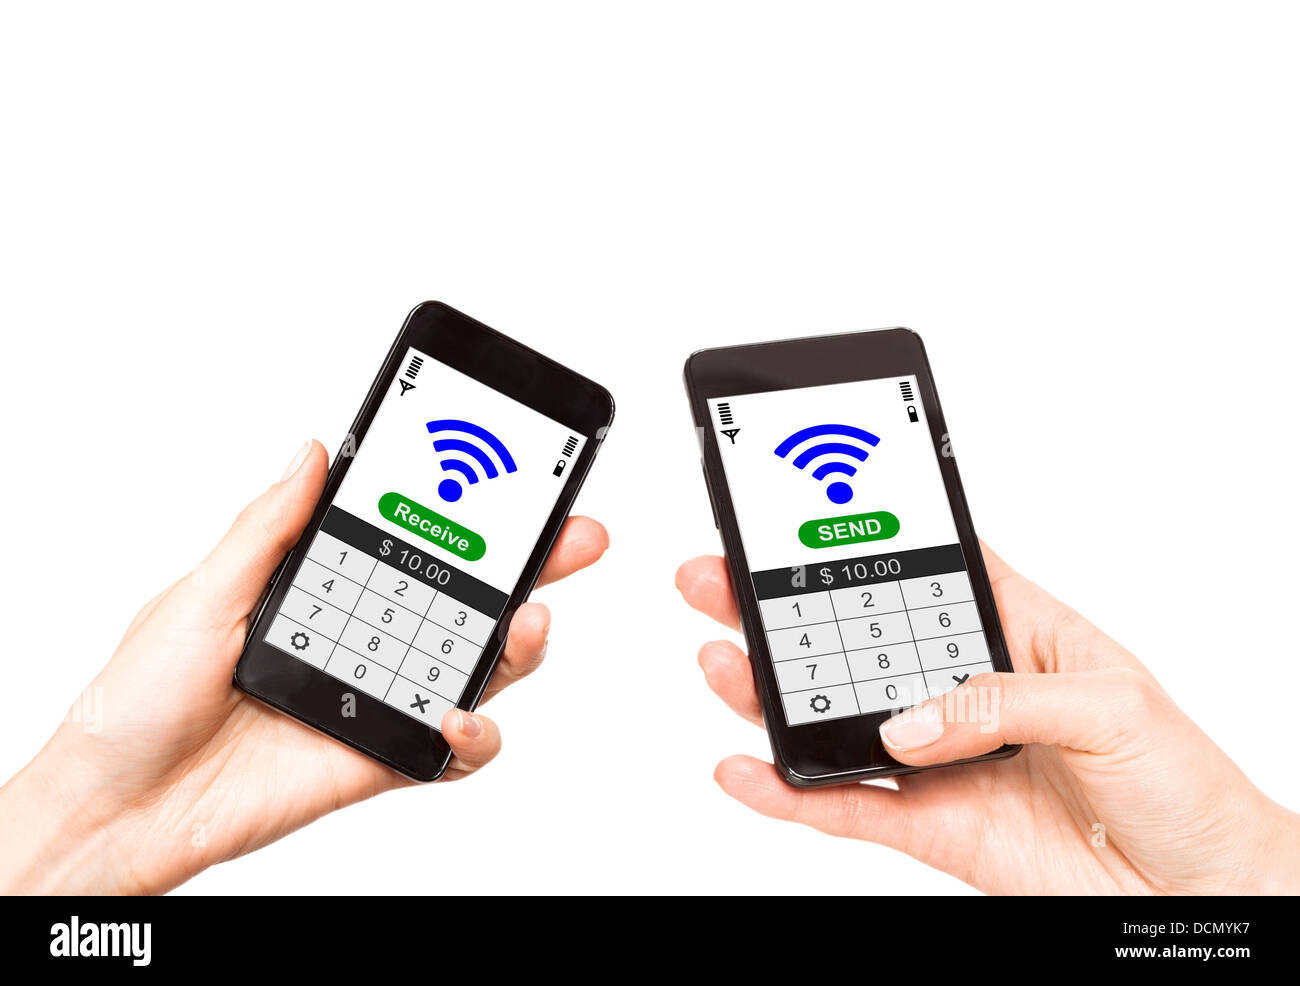 Two mobile phones with NFC payment technology  Near field